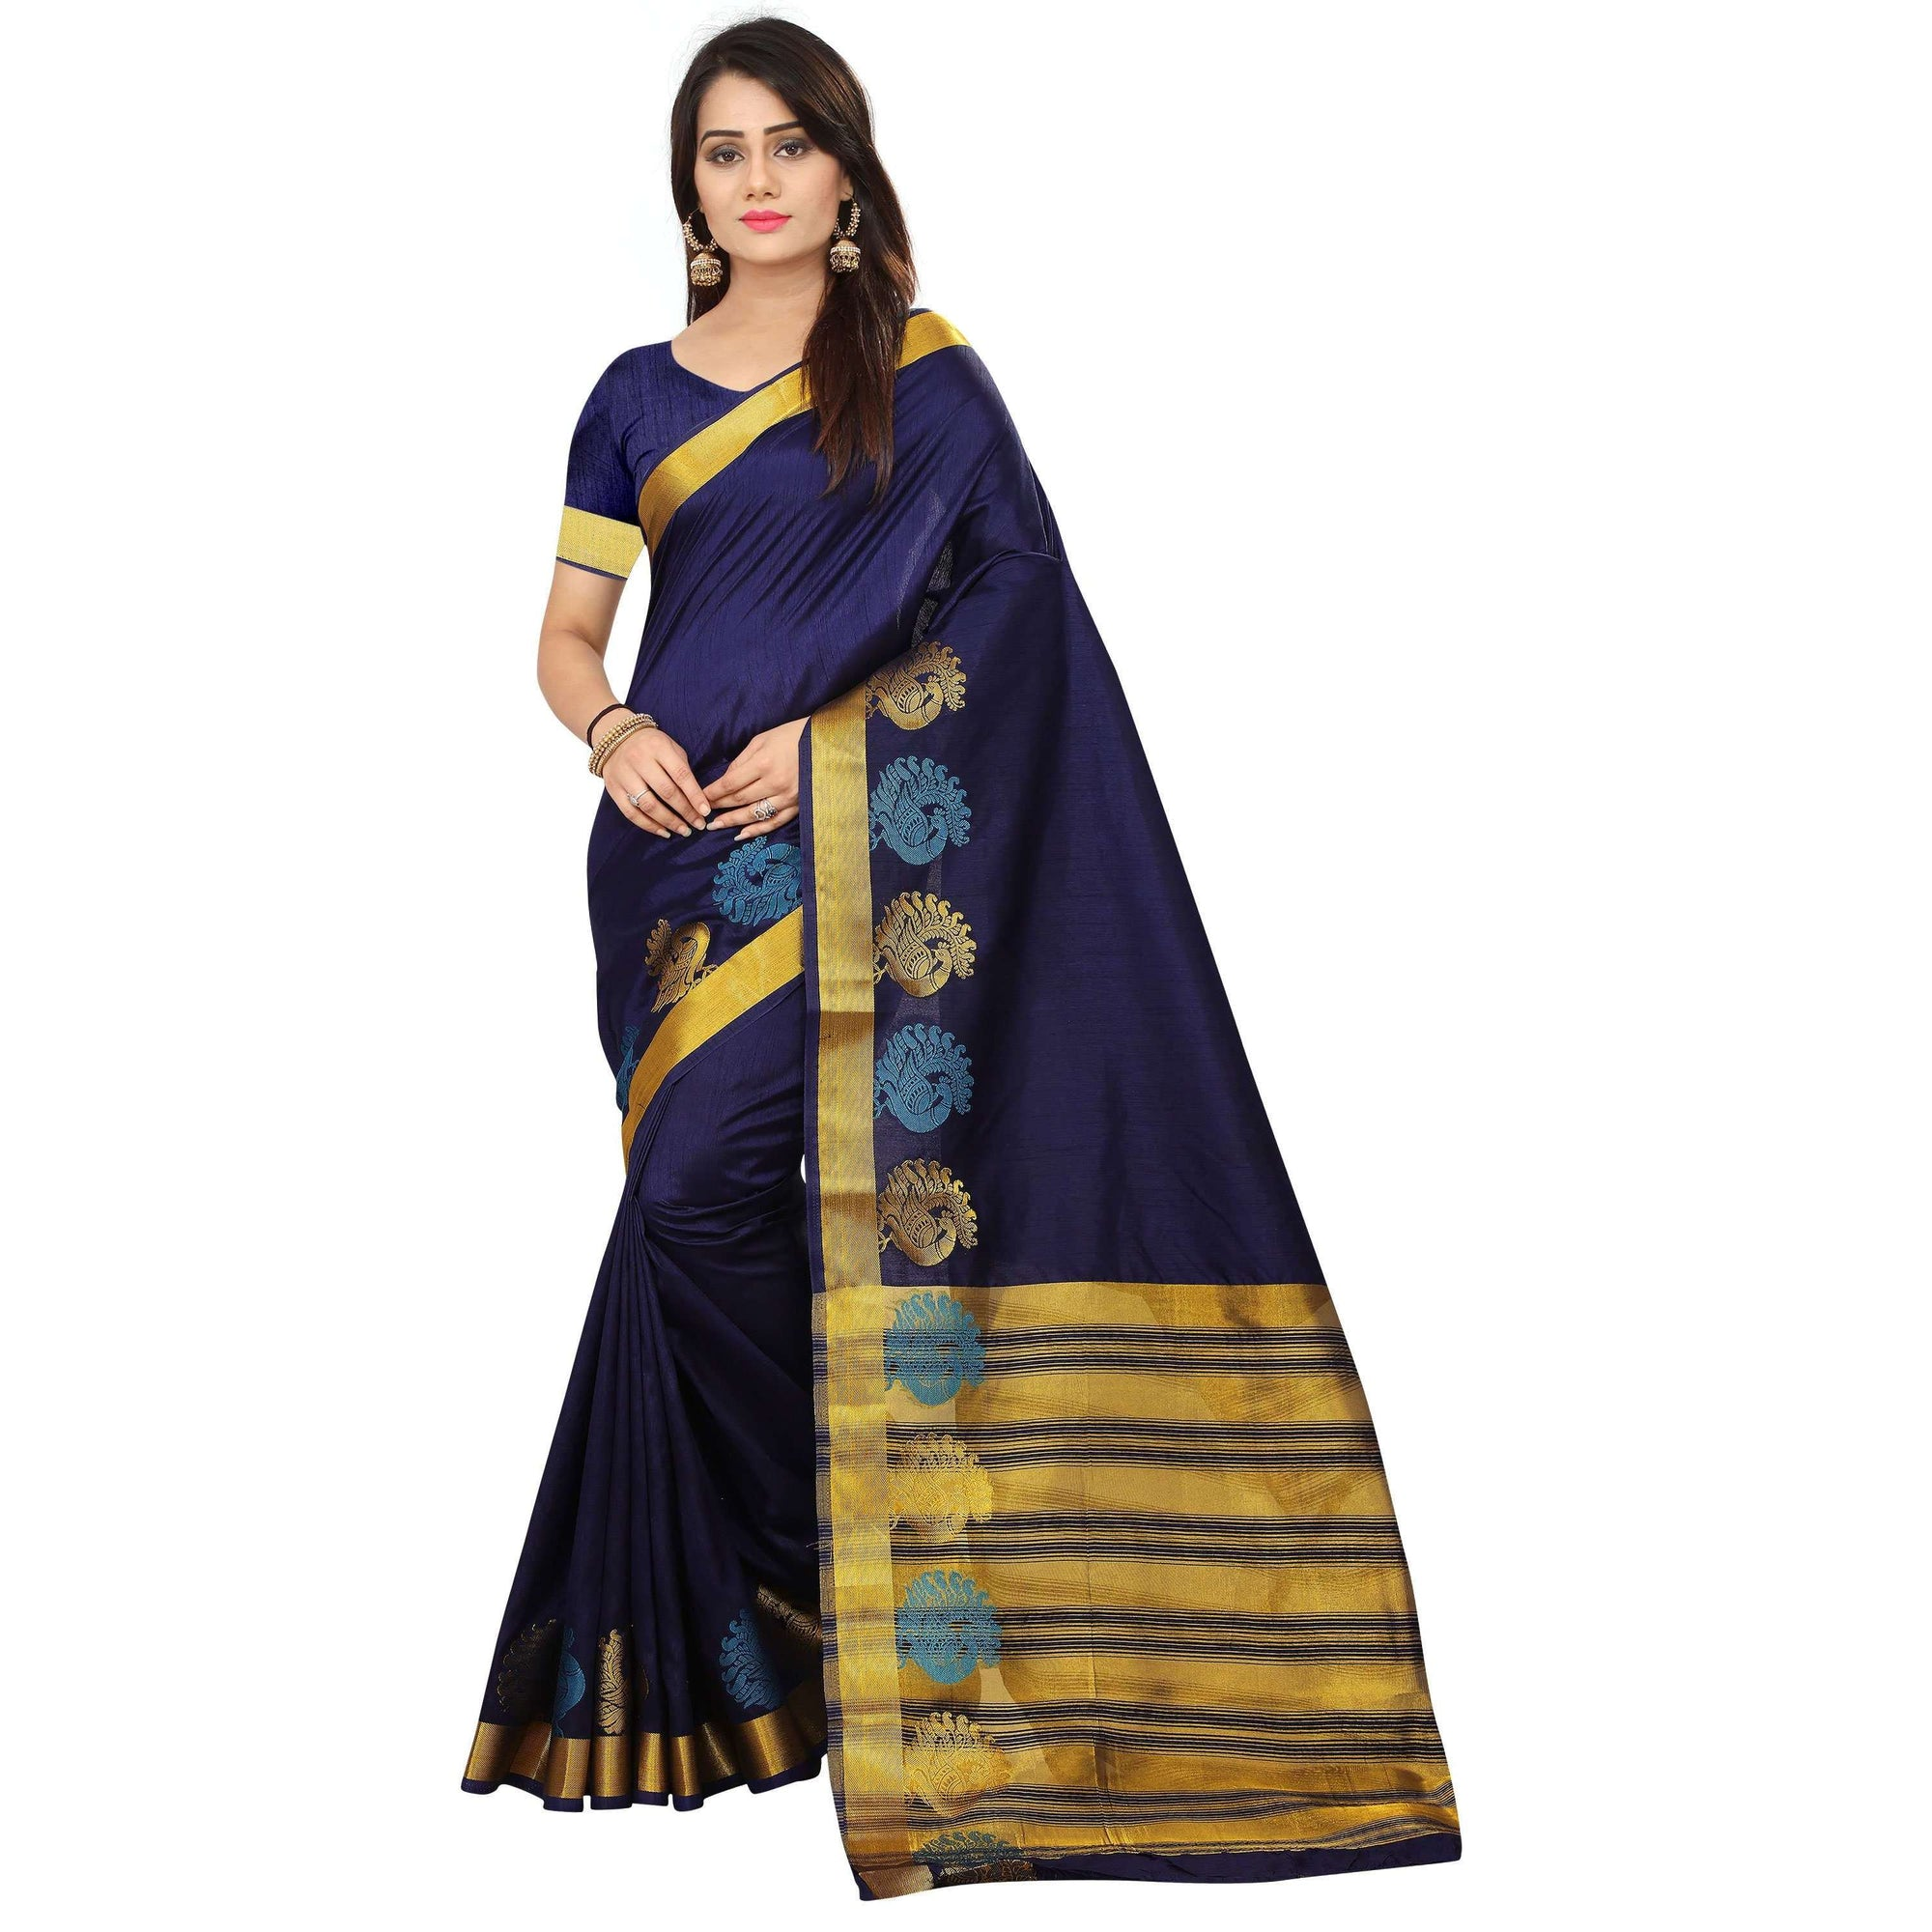 arars kanjivaram kanchipuram silk saree ( 249 RM NAVY BLUE )